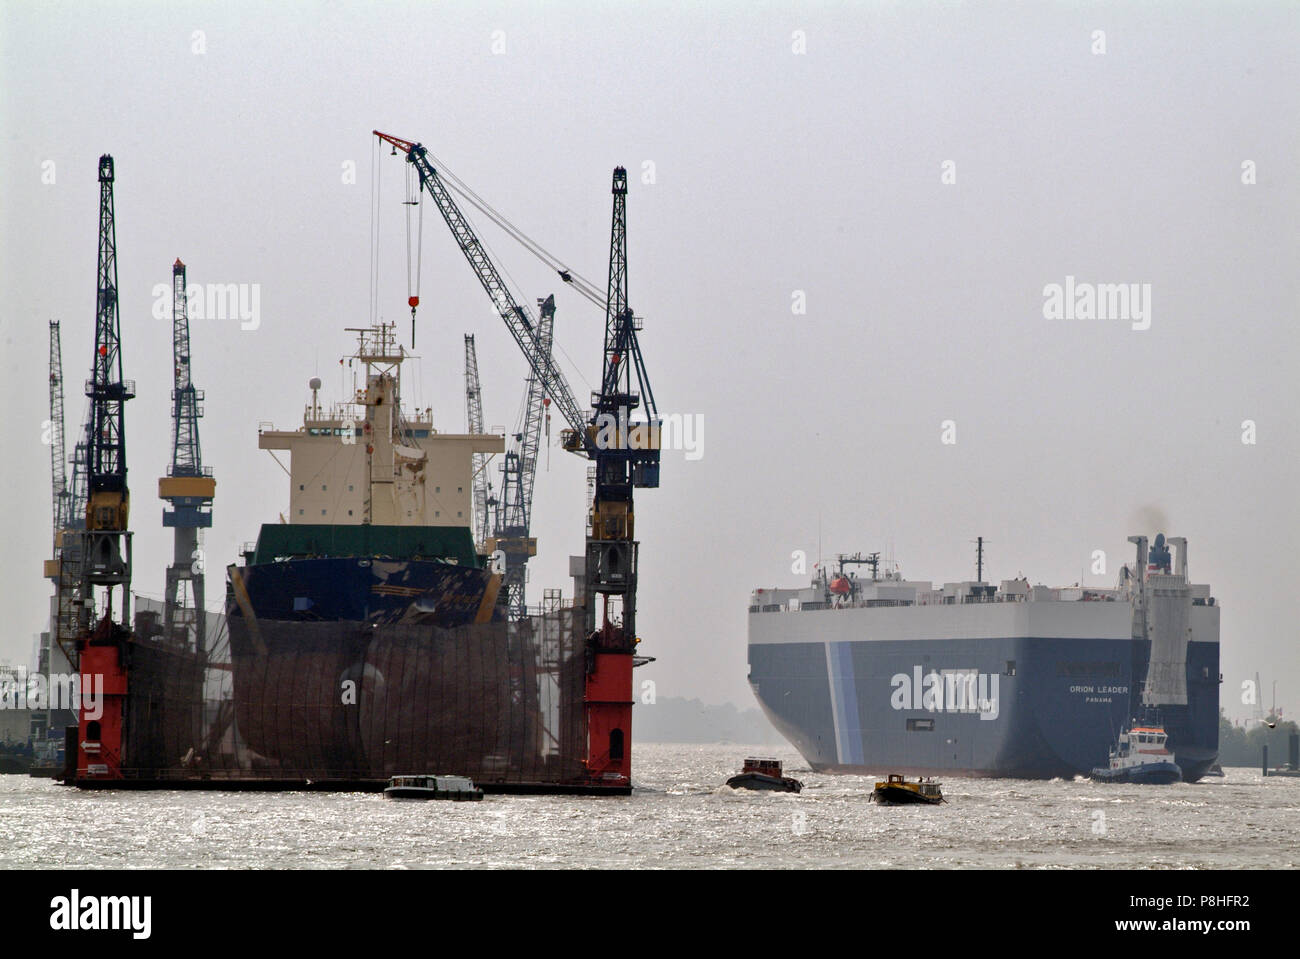 Car Carrier Ships Stock Photos & Car Carrier Ships Stock